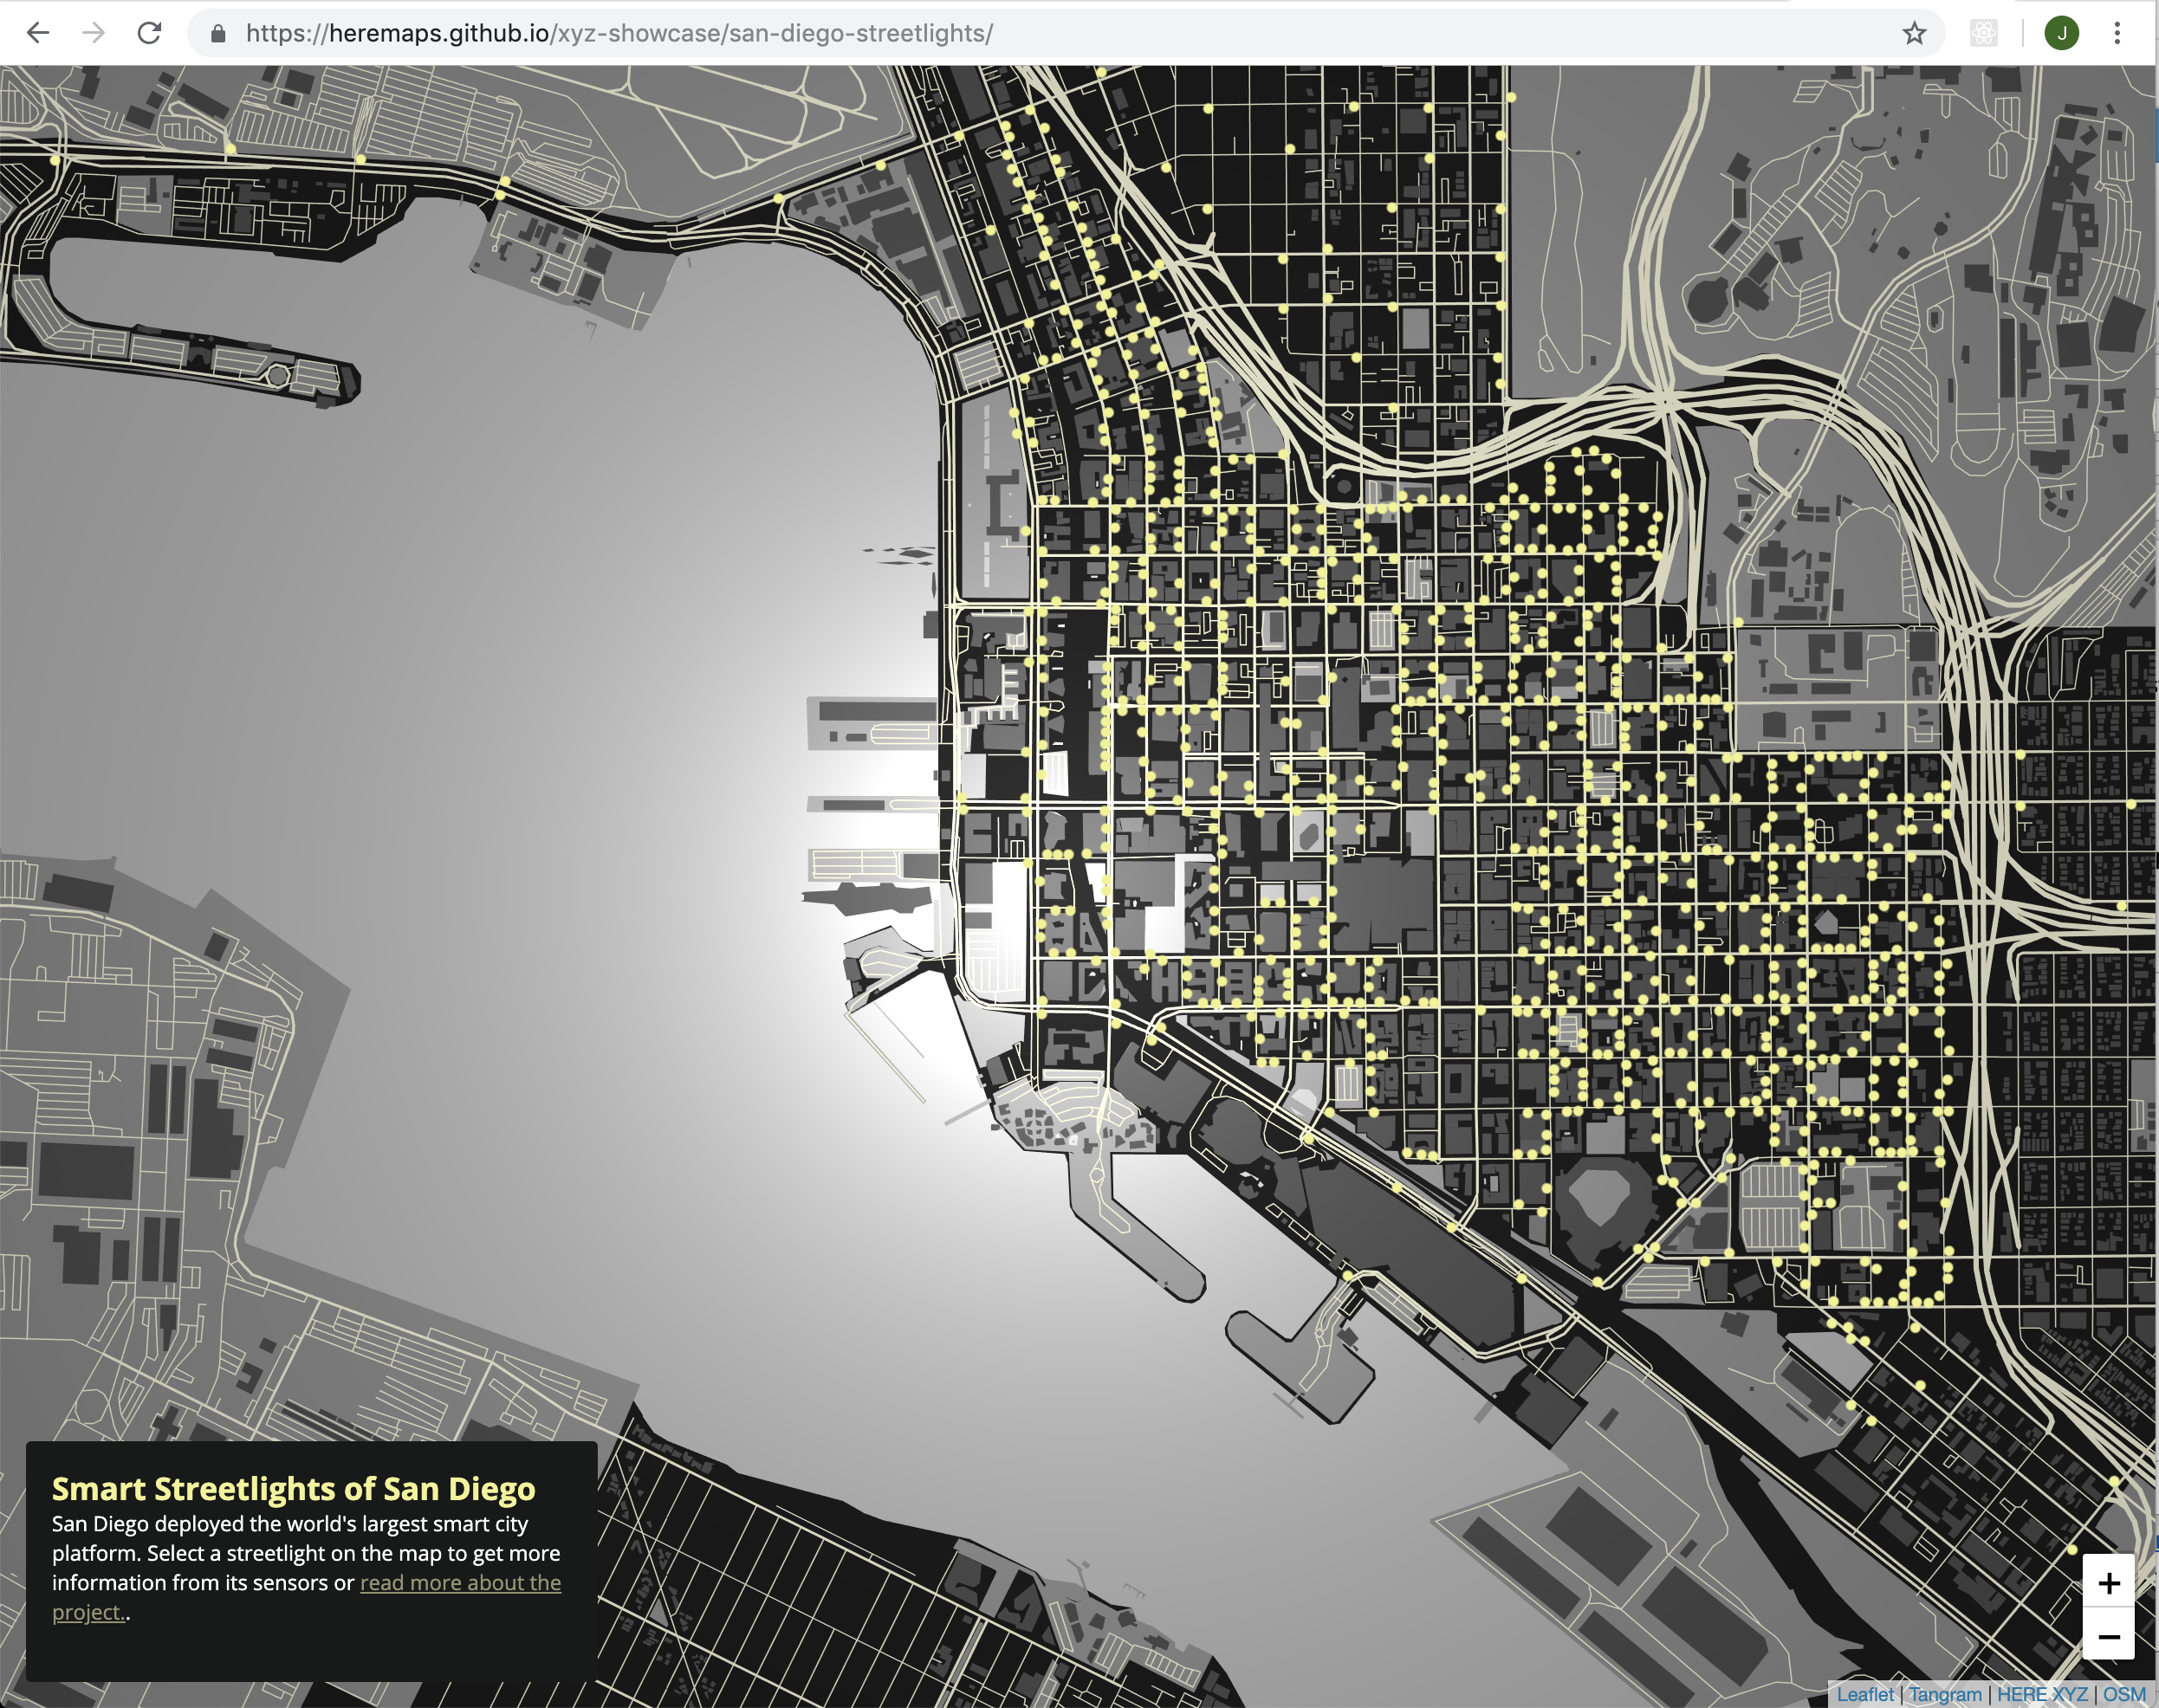 How to Render a Map of San go's Smart City Streetlights ... Map Of Or With Cities on map of cities fl, map of cities mt, map of cities va, map of cities ar, map of cities tn, map of cities france, map of cities united states, map of cities ms,